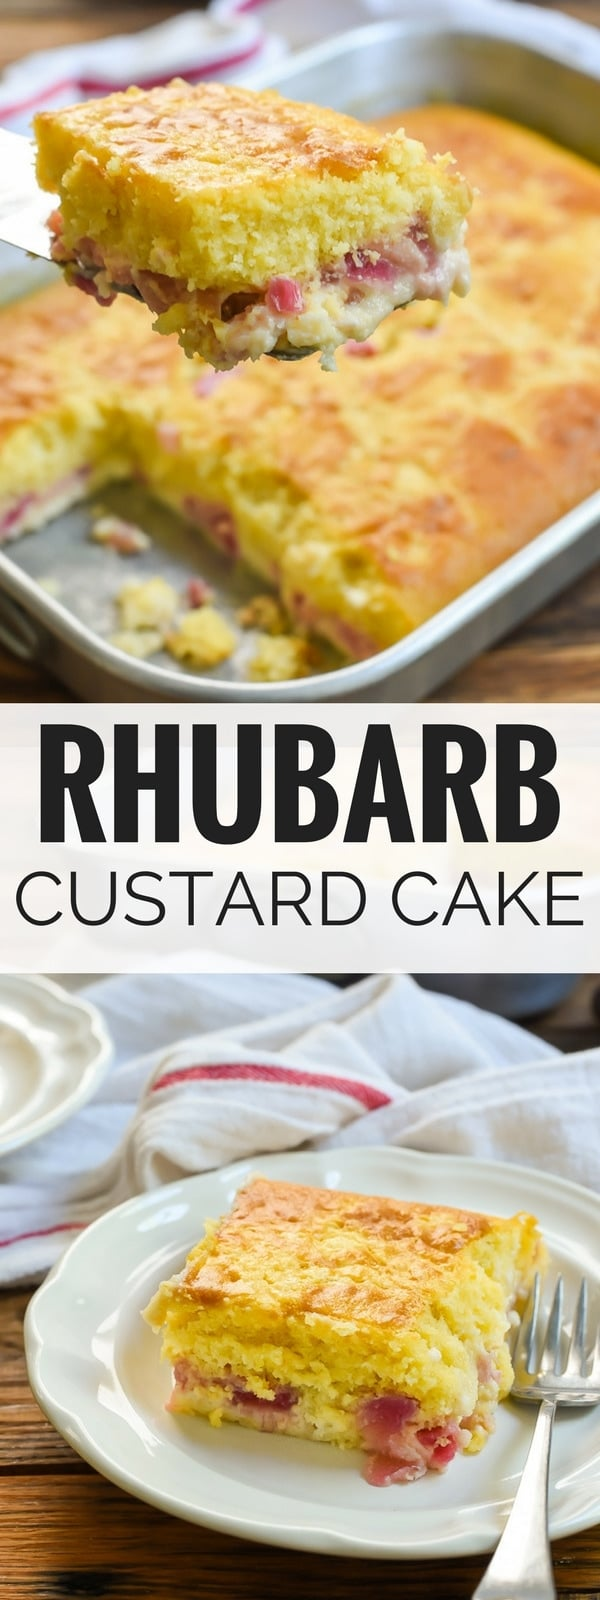 This Rhubarb Custard Cake with a fluffy cake layer and a creamy rhubarb custard layer is the perfect spring dessert. And did I mention how incredibly EASY it is to make?